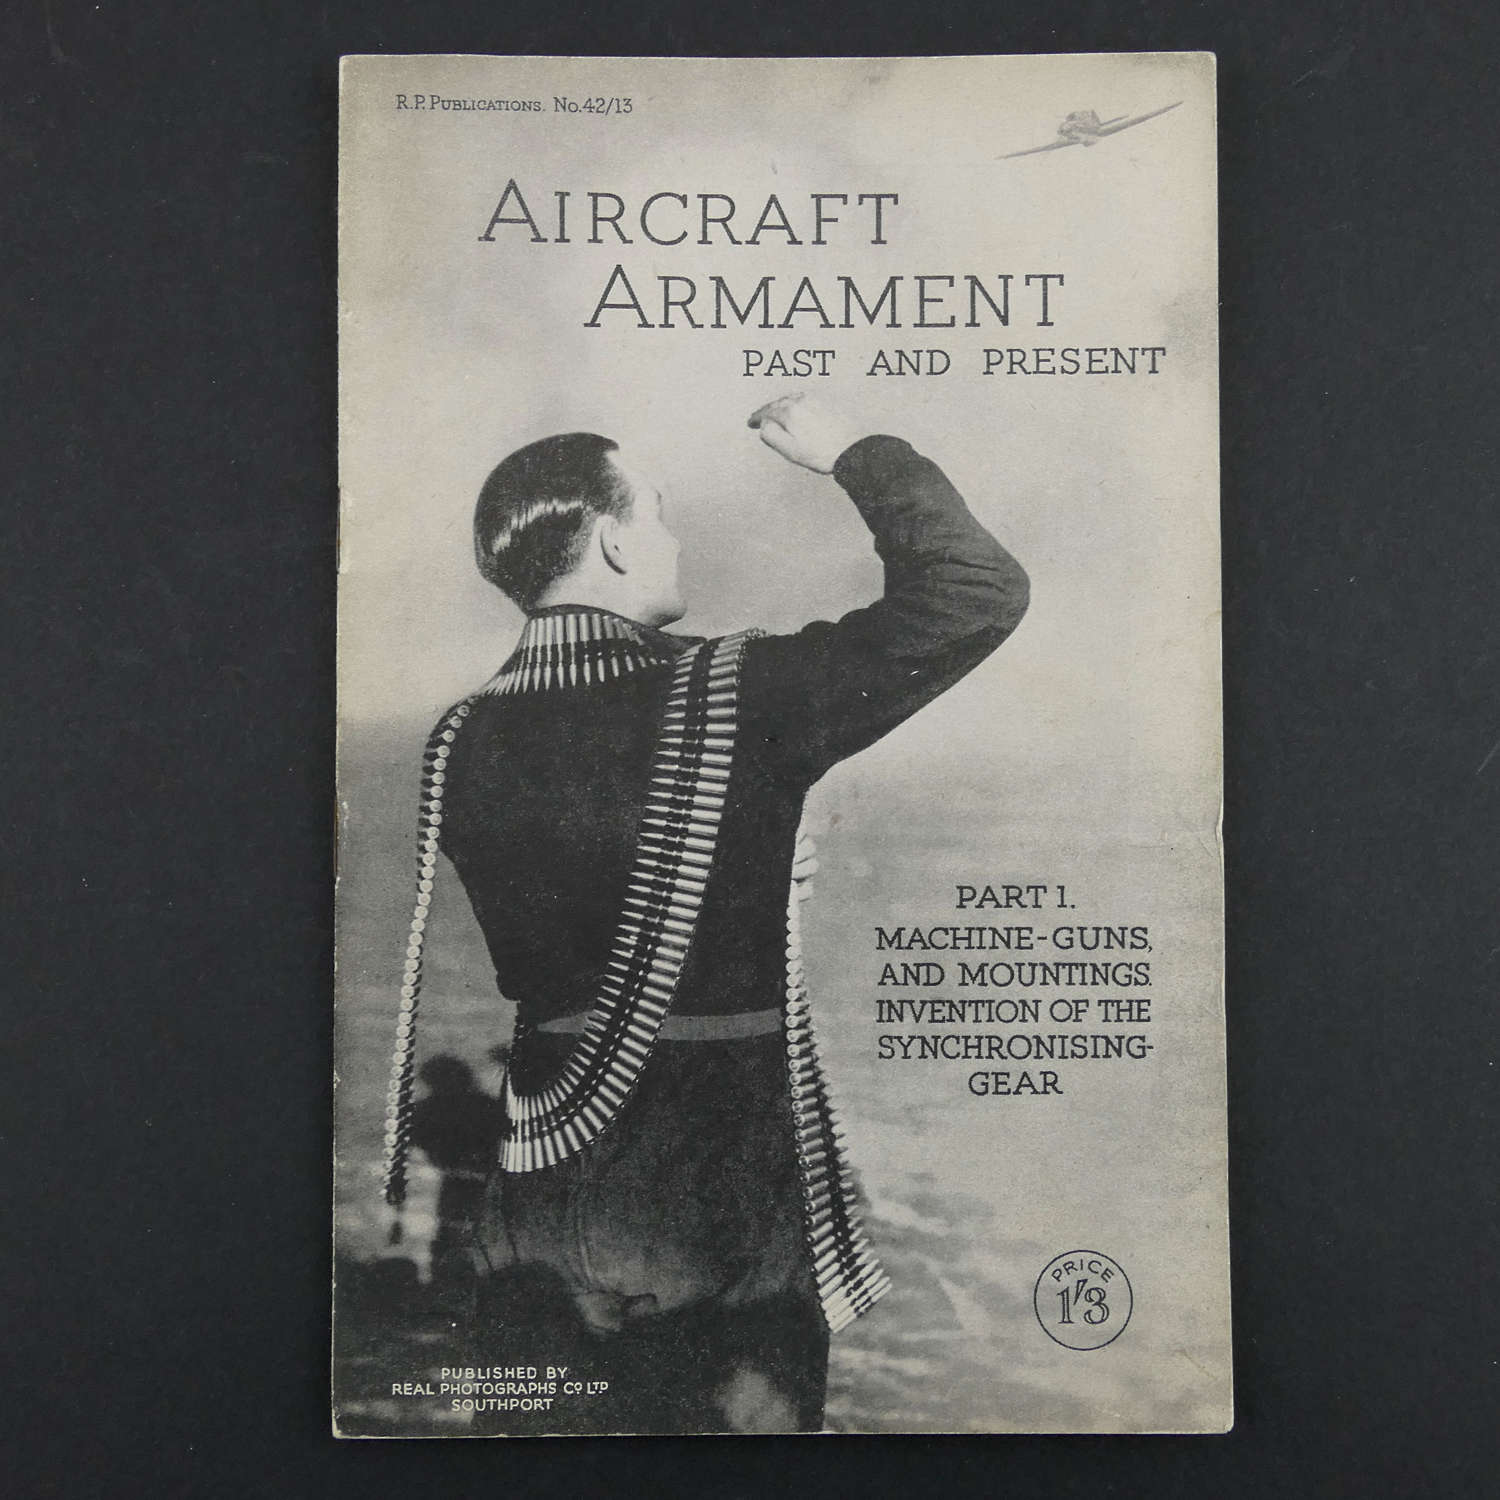 Aircraft Armament Past And Present, Part 1